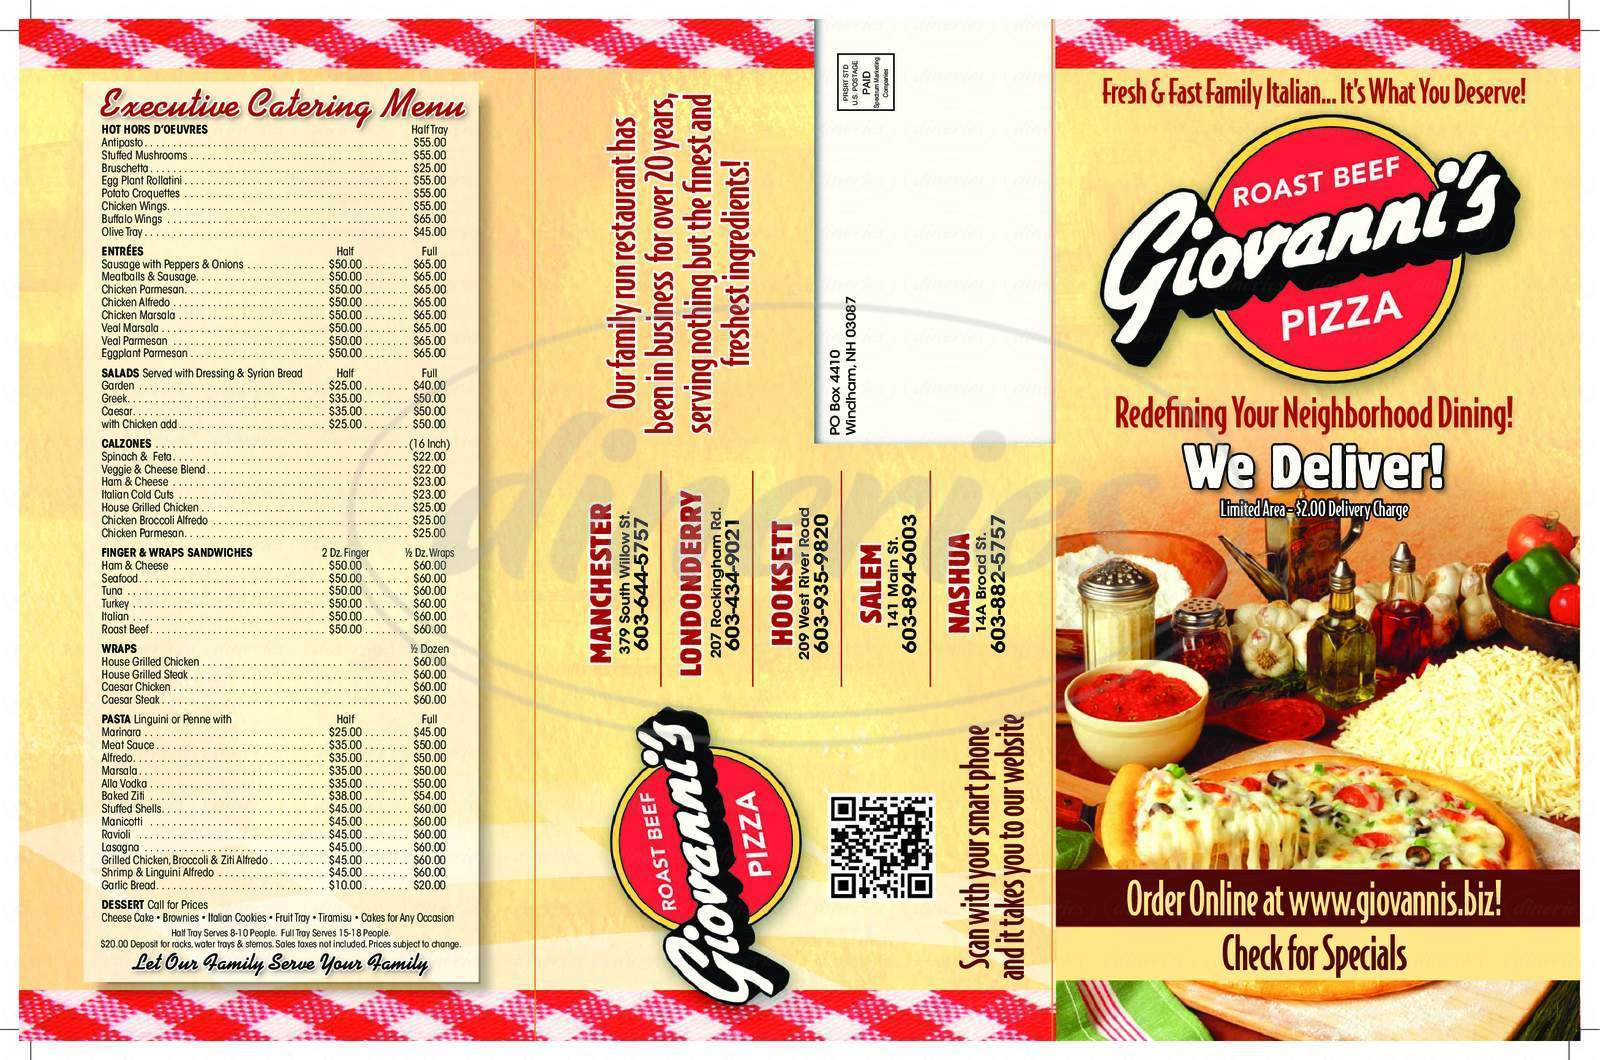 menu for Giovanni's Roast Beef & Pizzeria